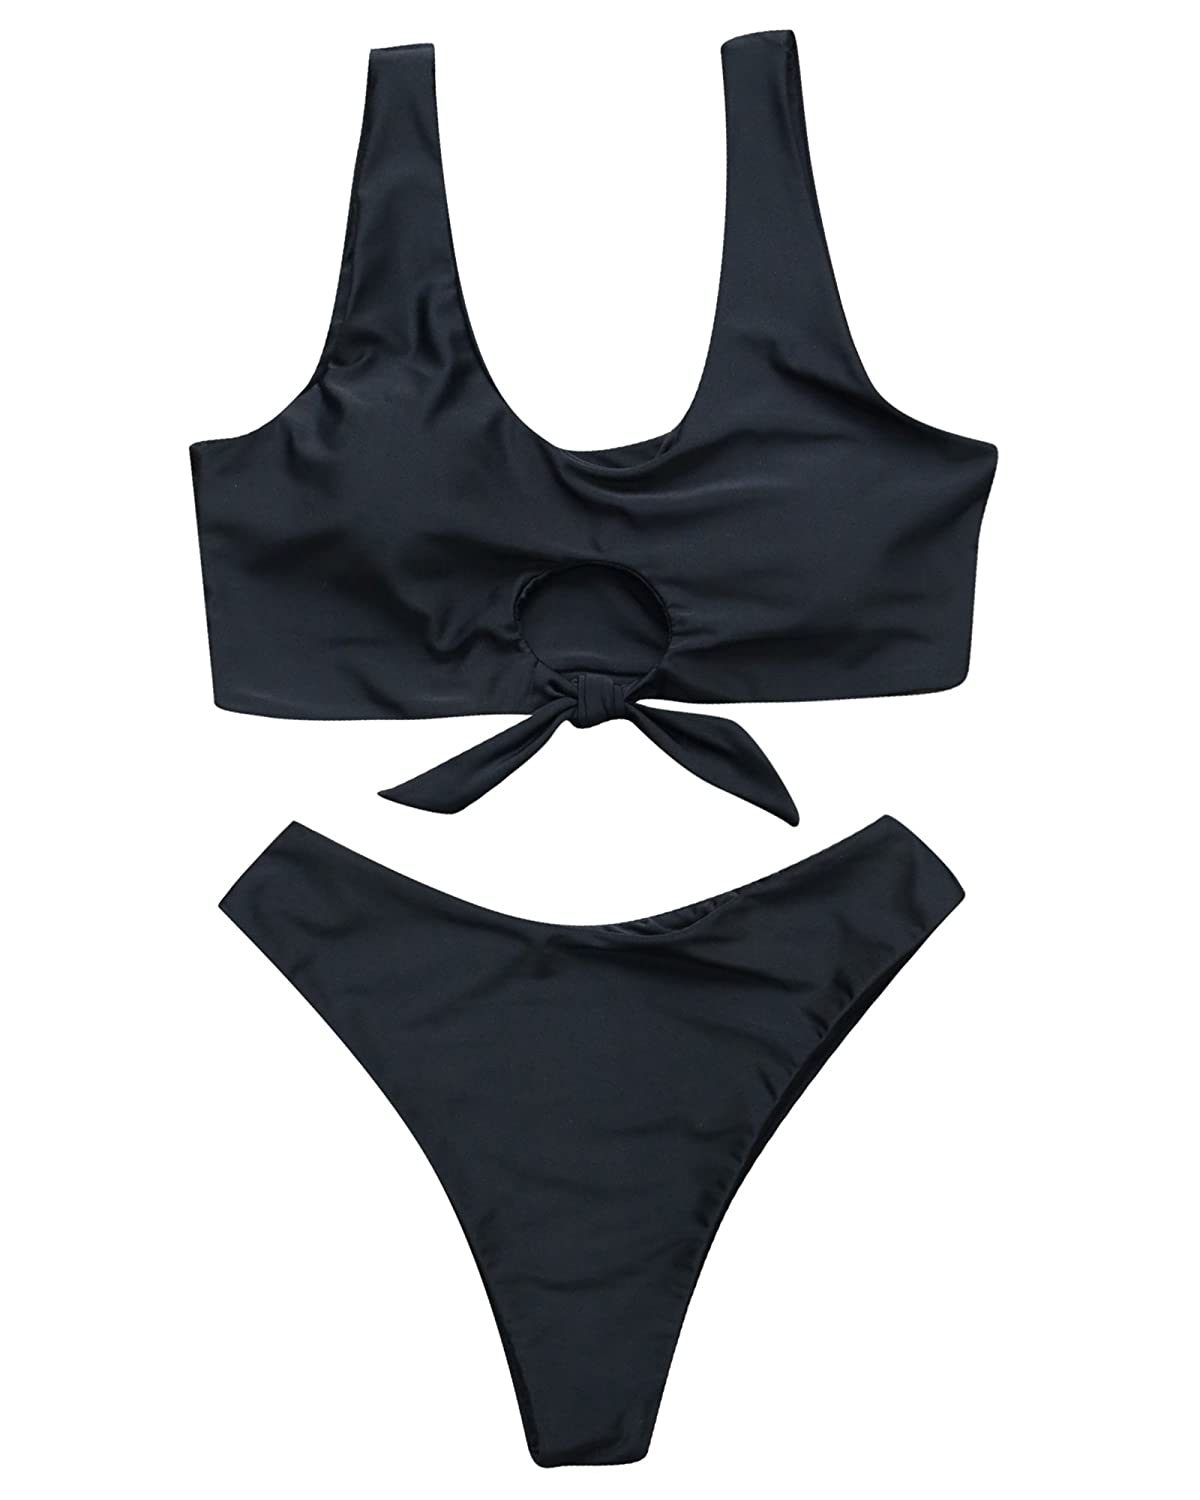 e3515bdc2c RUUHEE is an international retailer,we specialize in all kinds of bikini, swimsuit,swimwear and other charming clothing with good quality.